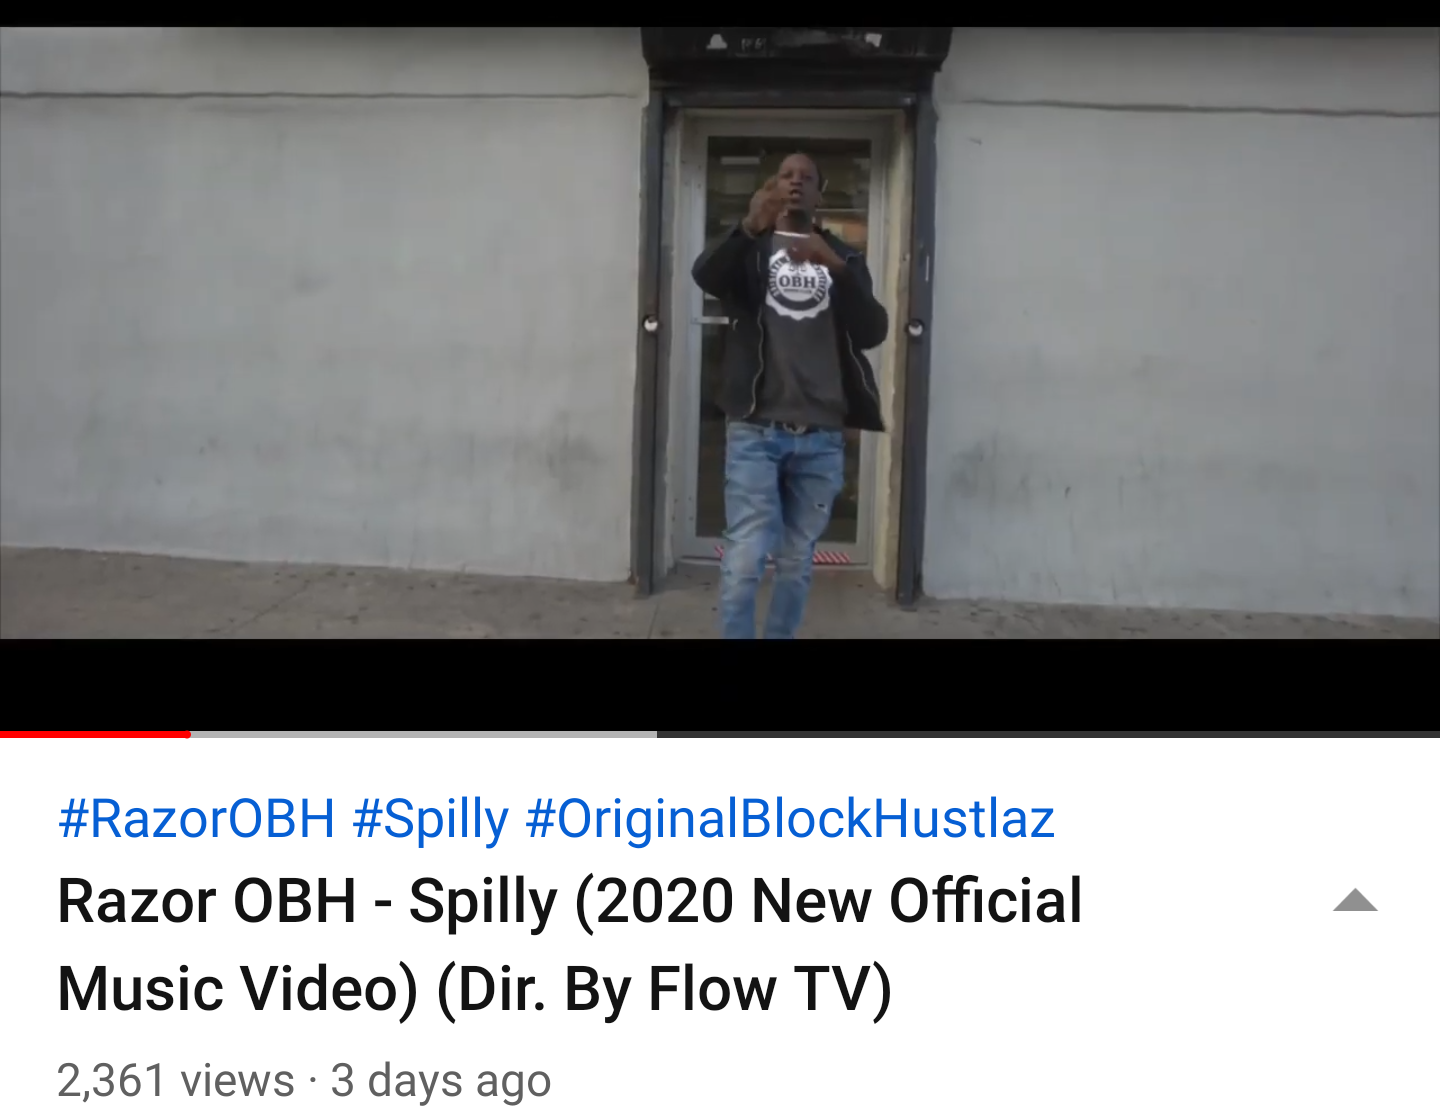 Razor OBH – Spilly (2020 New Official Music Video) (Dir. By Flow TV)